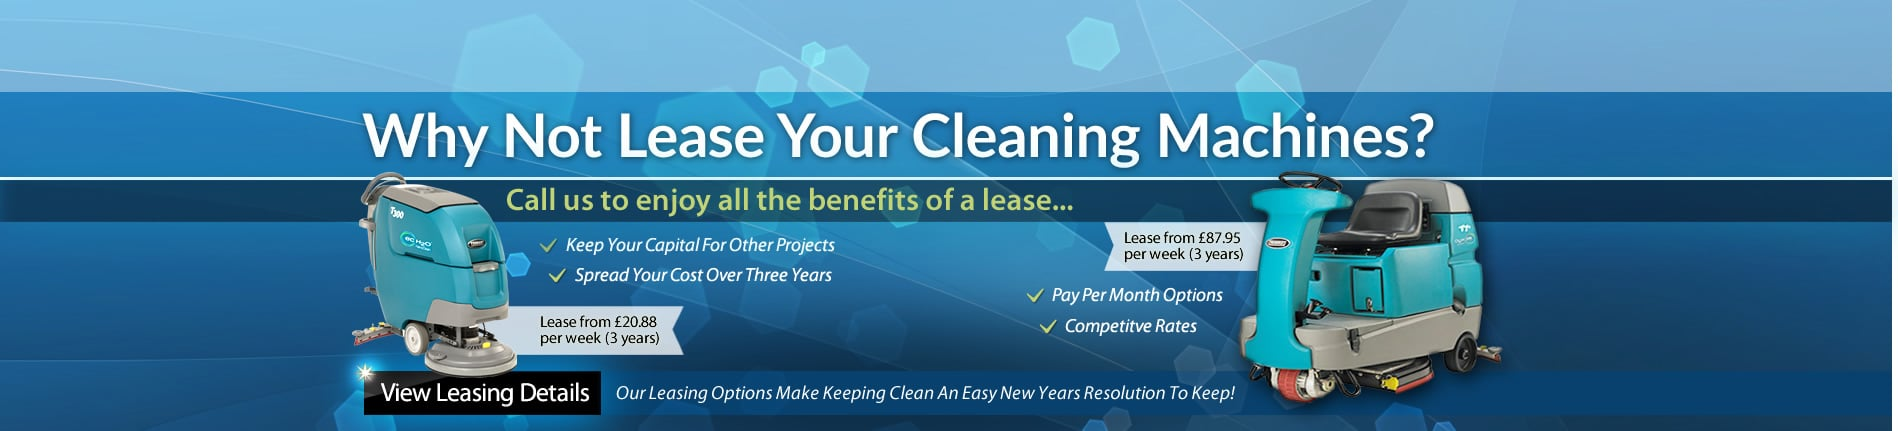 cleams-lease-banner-q1-2017